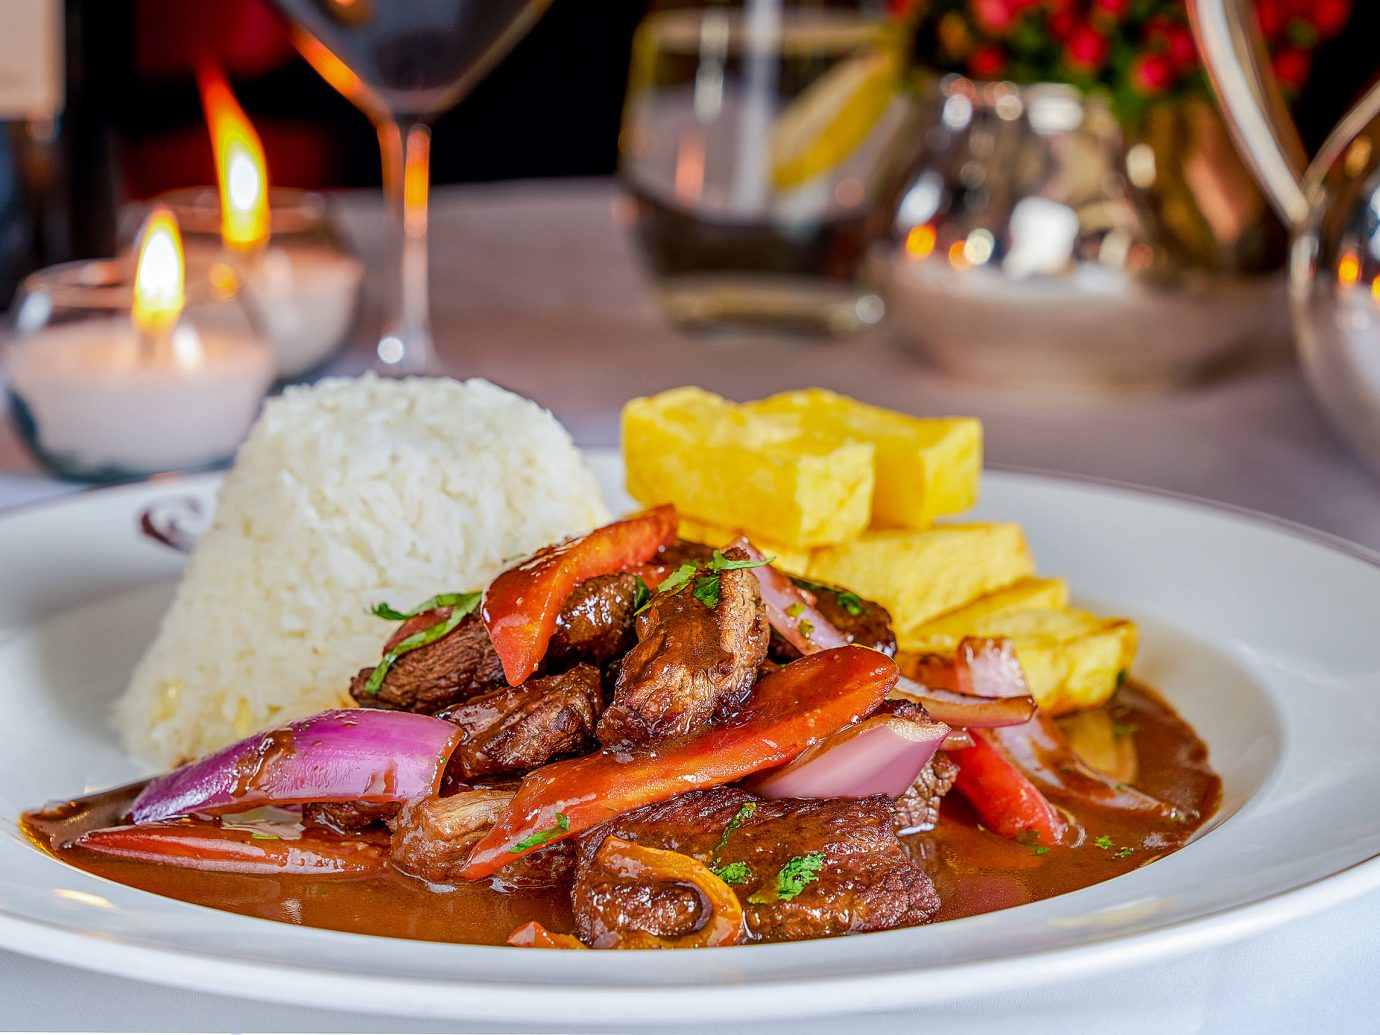 Hotels Romance plate food table dish cuisine meal Seafood costa rican cuisine peruvian food thai food full breakfast brunch dinner meat stew curry piece de resistance